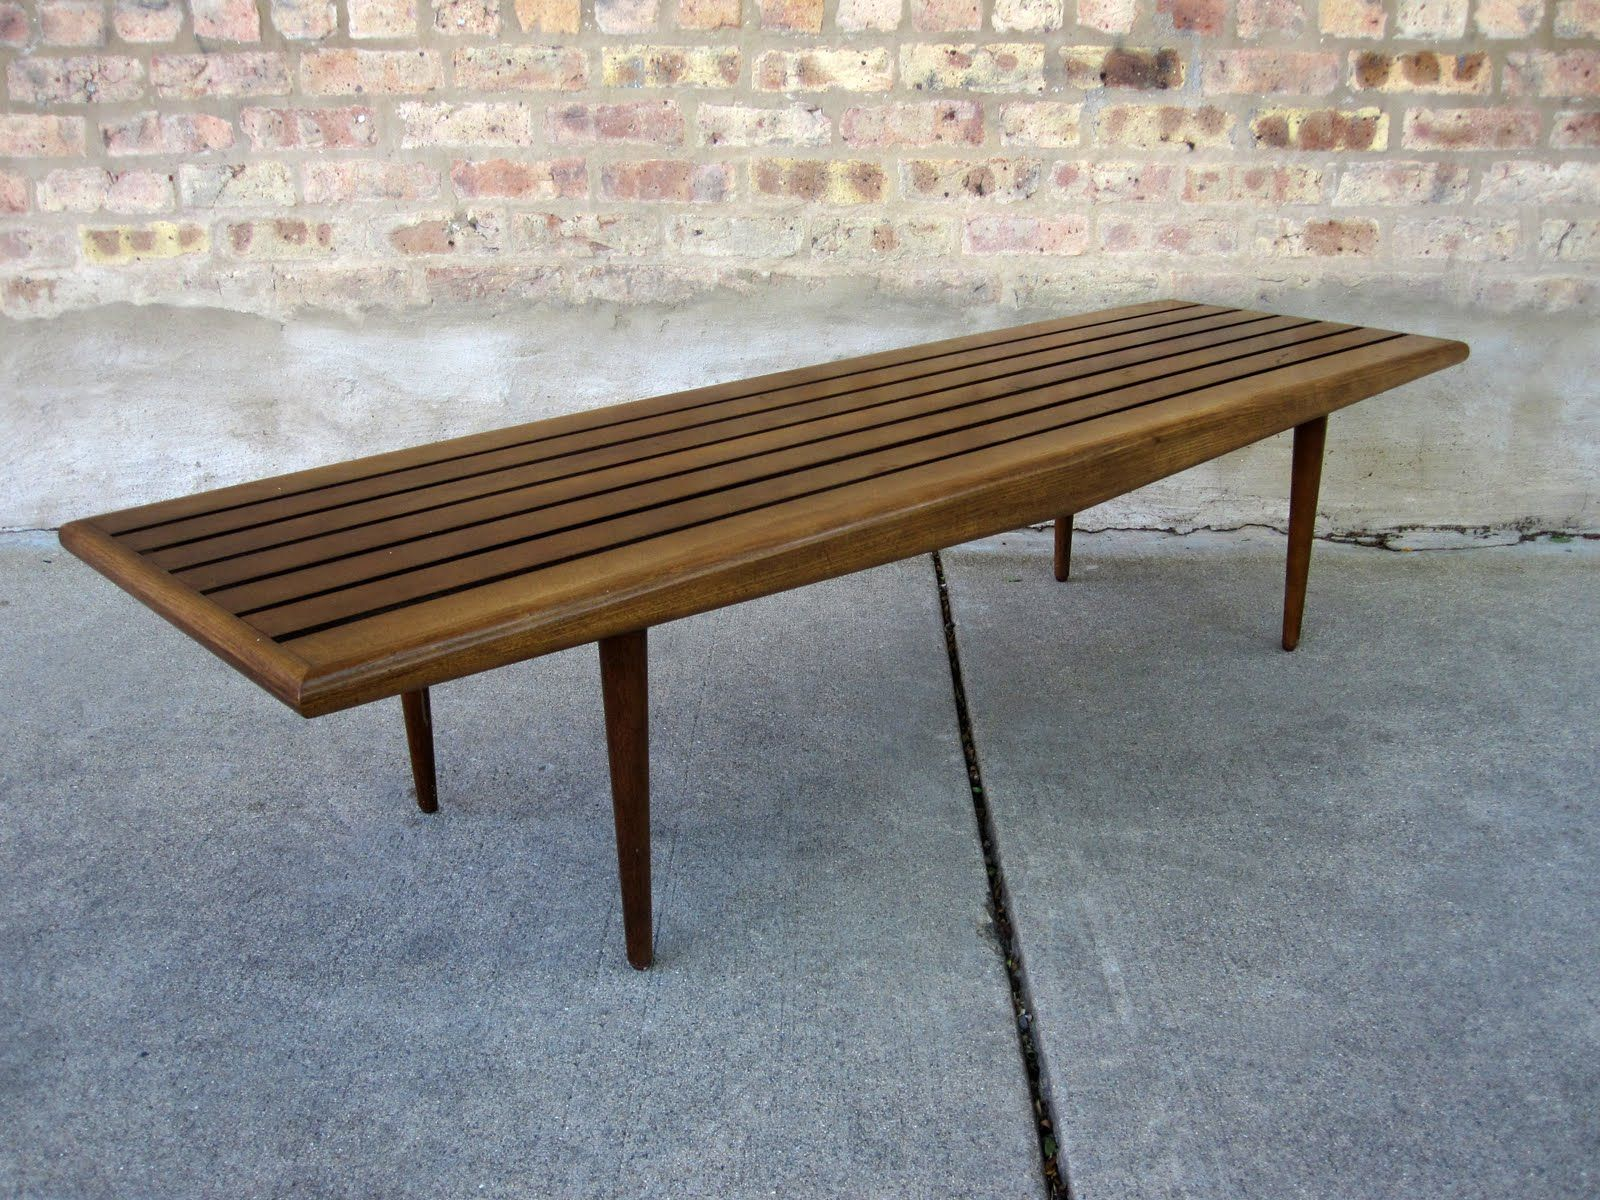 Benches As Coffee Tables Interior Decorating Mid Century Modern Bench Modern Bench Mid Century Bench